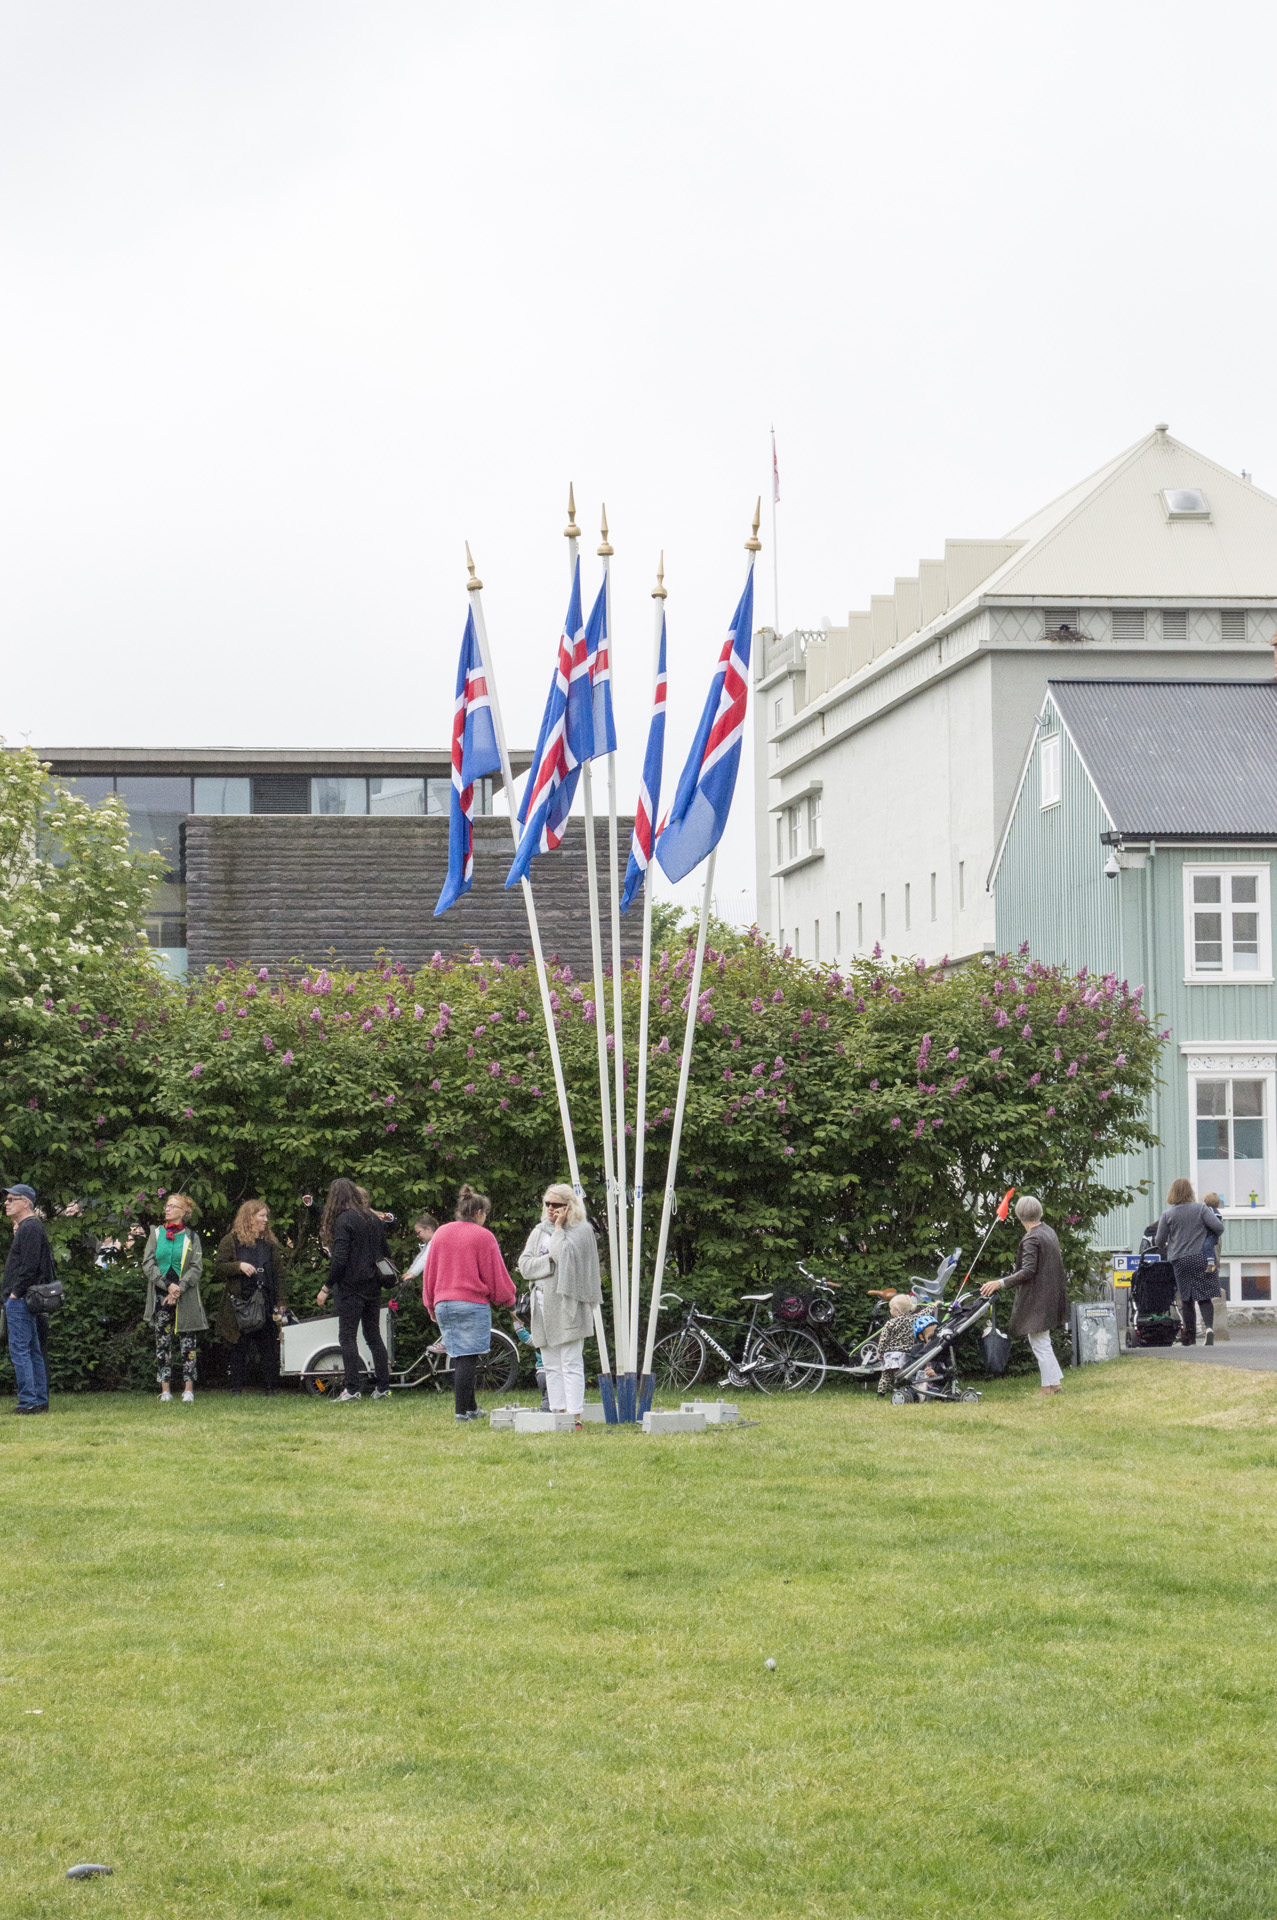 People gather to celebrate National Day in Austurvöllur, Reykjavík, Iceland.